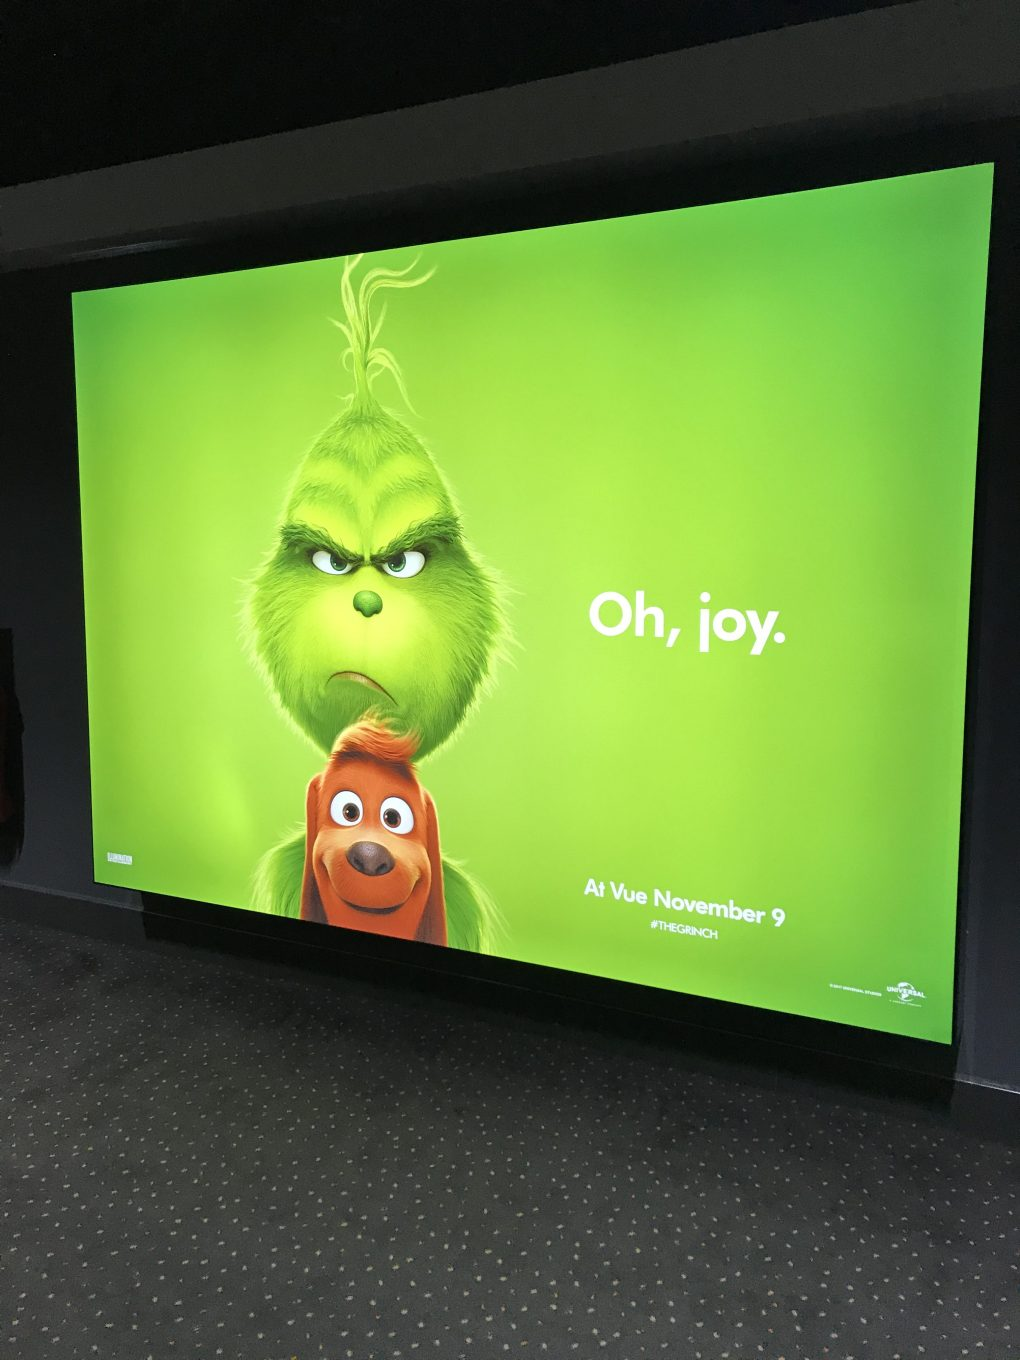 A poster for the Grinch Christmas film. The background is green with a cartoon version of the Grinch, (a green furry creature with an angry expression) holding a brown dog. Next to the Grinch it says 'Oh Joy.'